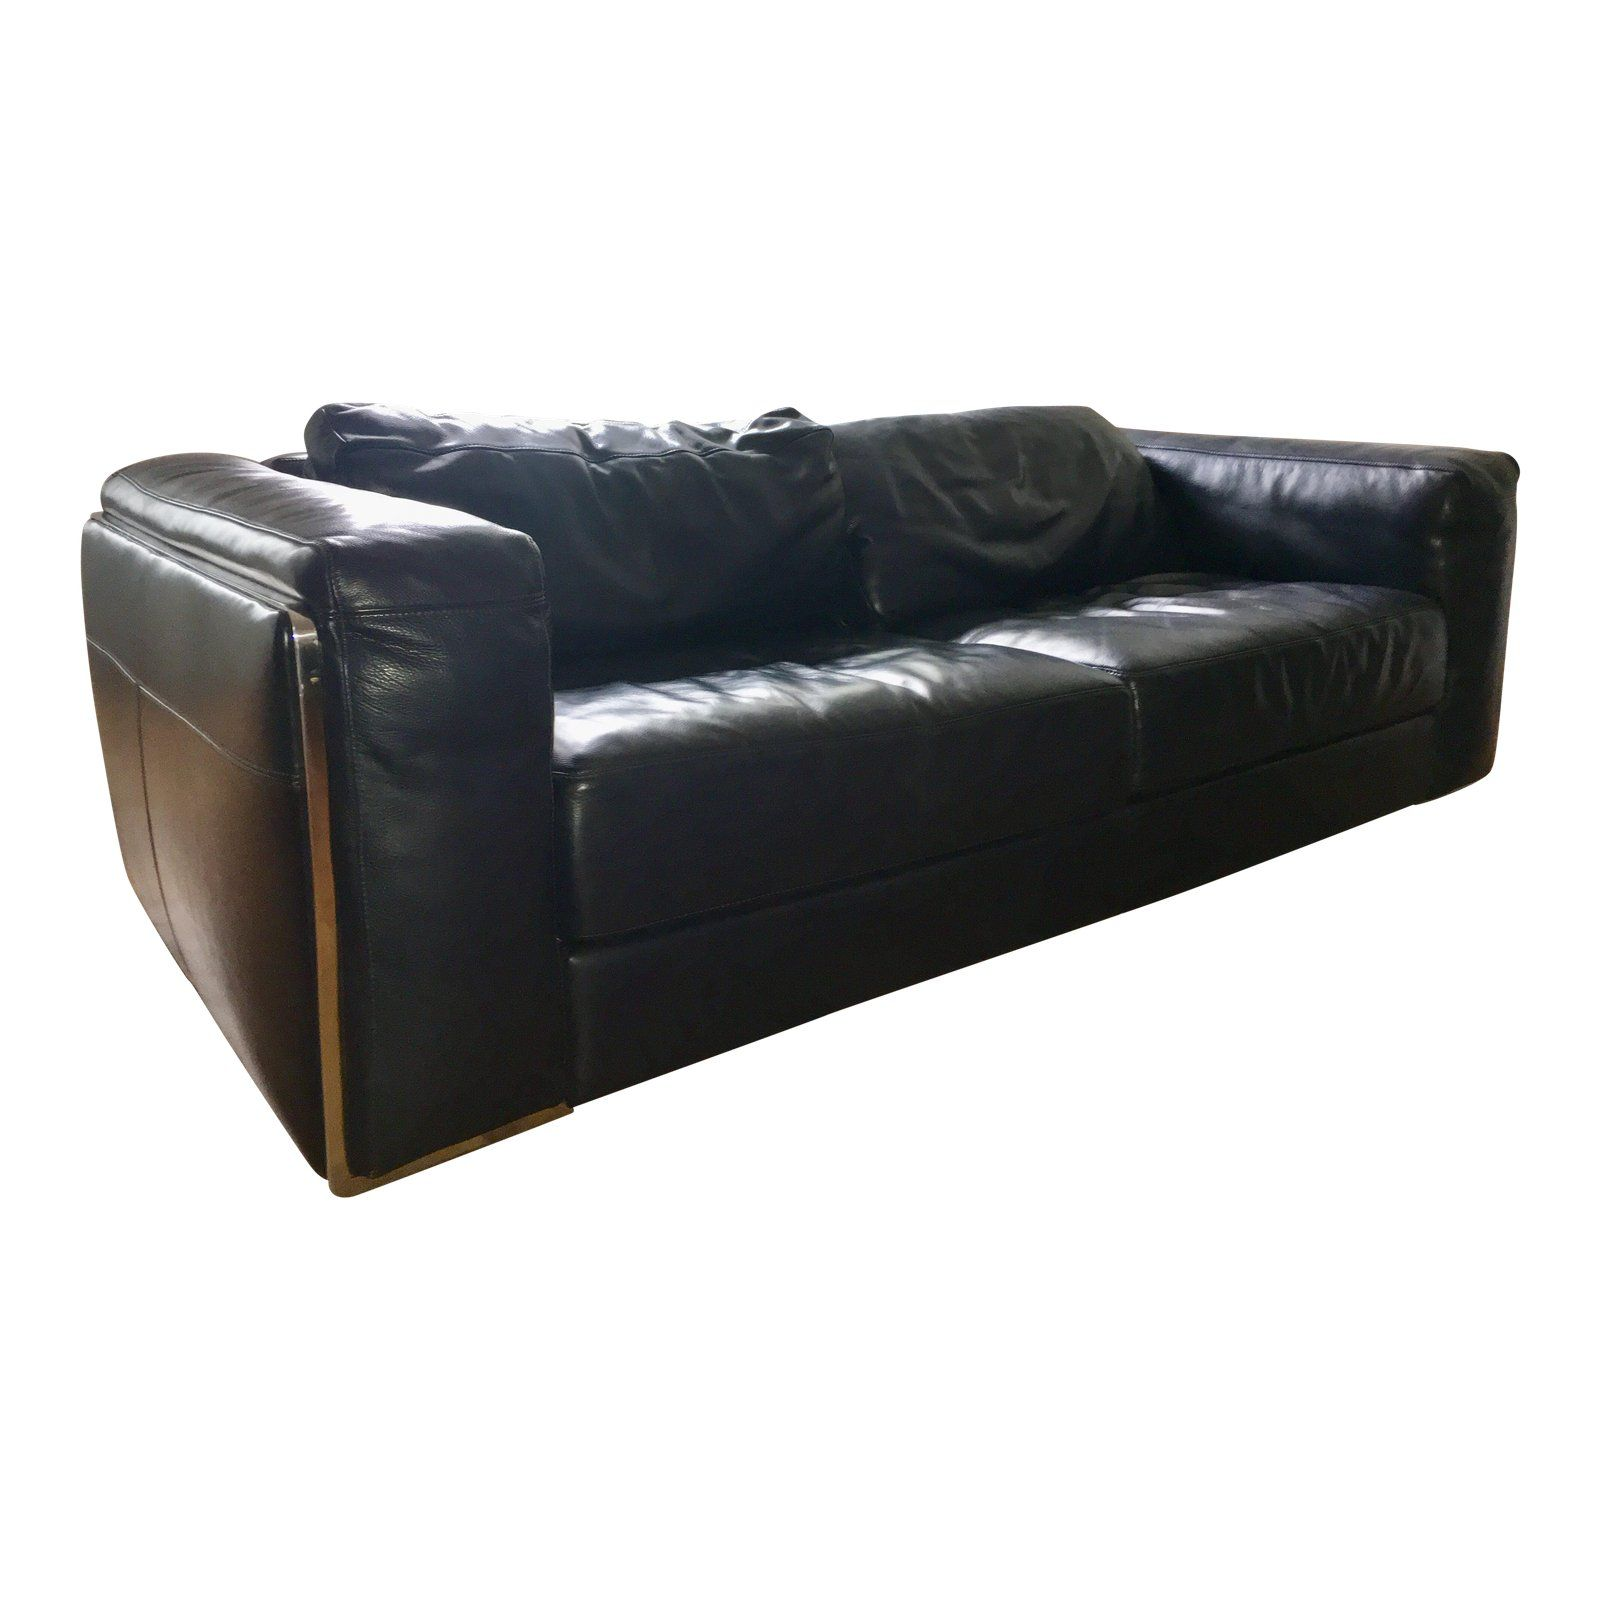 Dark Navy Blue Leather Sofas Navy Blue Leather Sofa Sofa Blue Leather Sofa